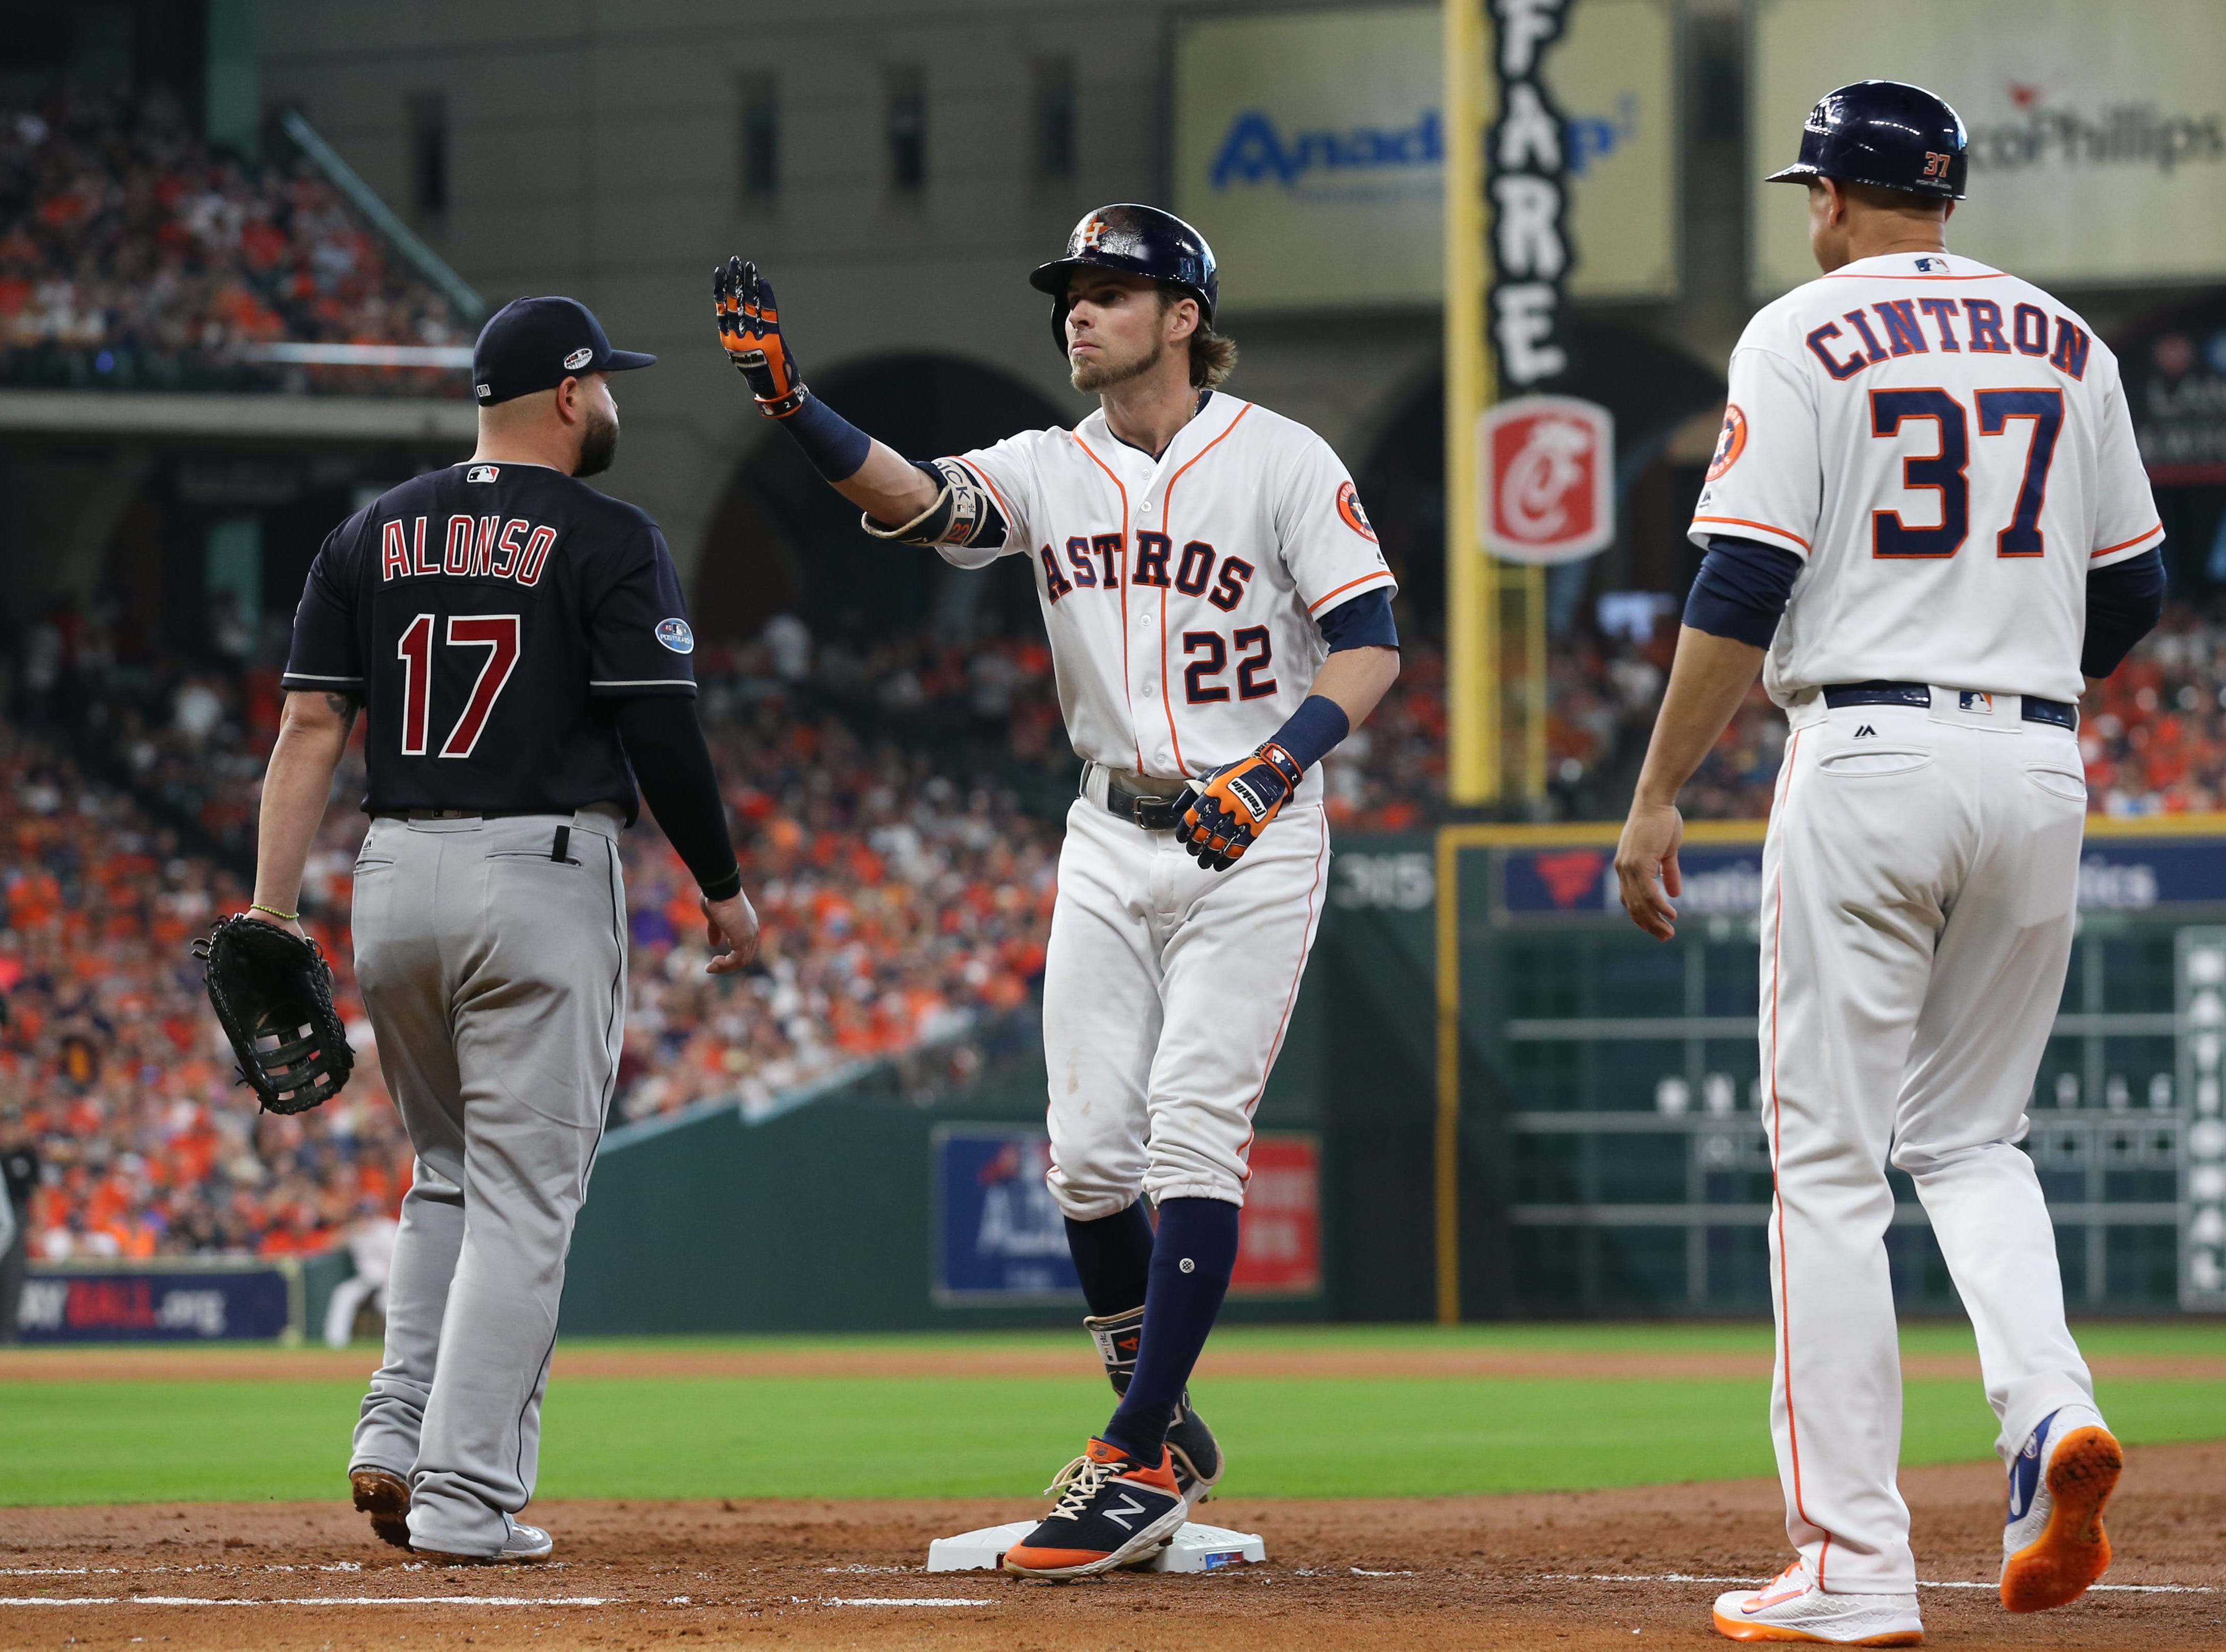 ALDS Game 2: Astros right fielder Josh Reddick points to the dugout after a single in the third inning.